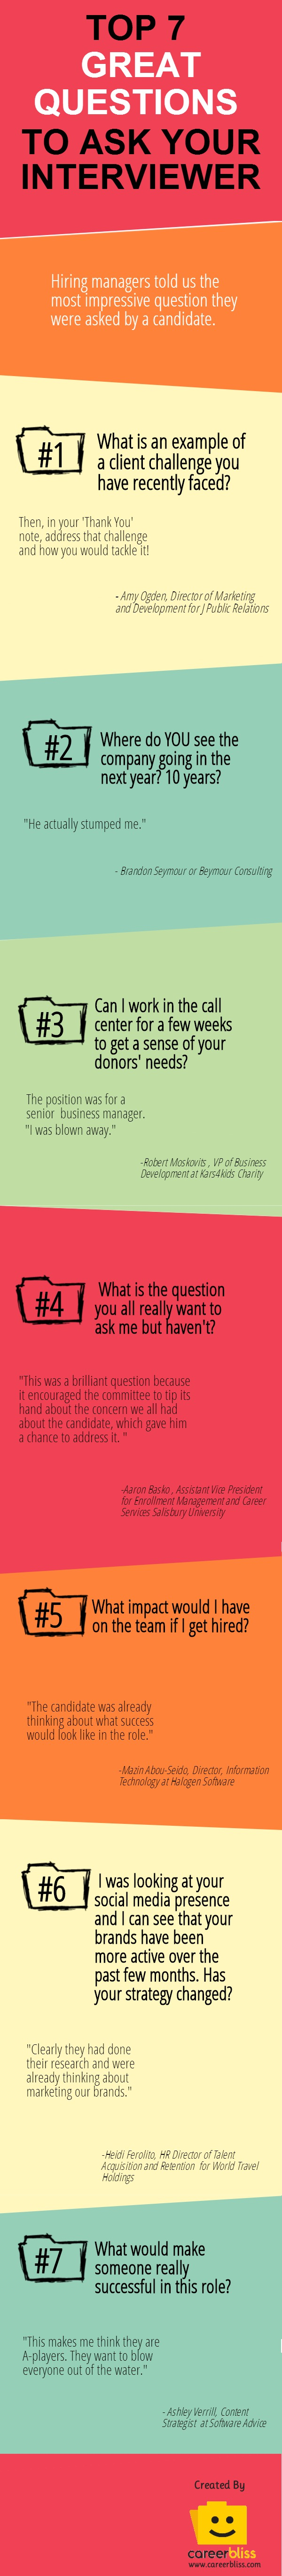 7 Great Questions To Ask Your Interviewer